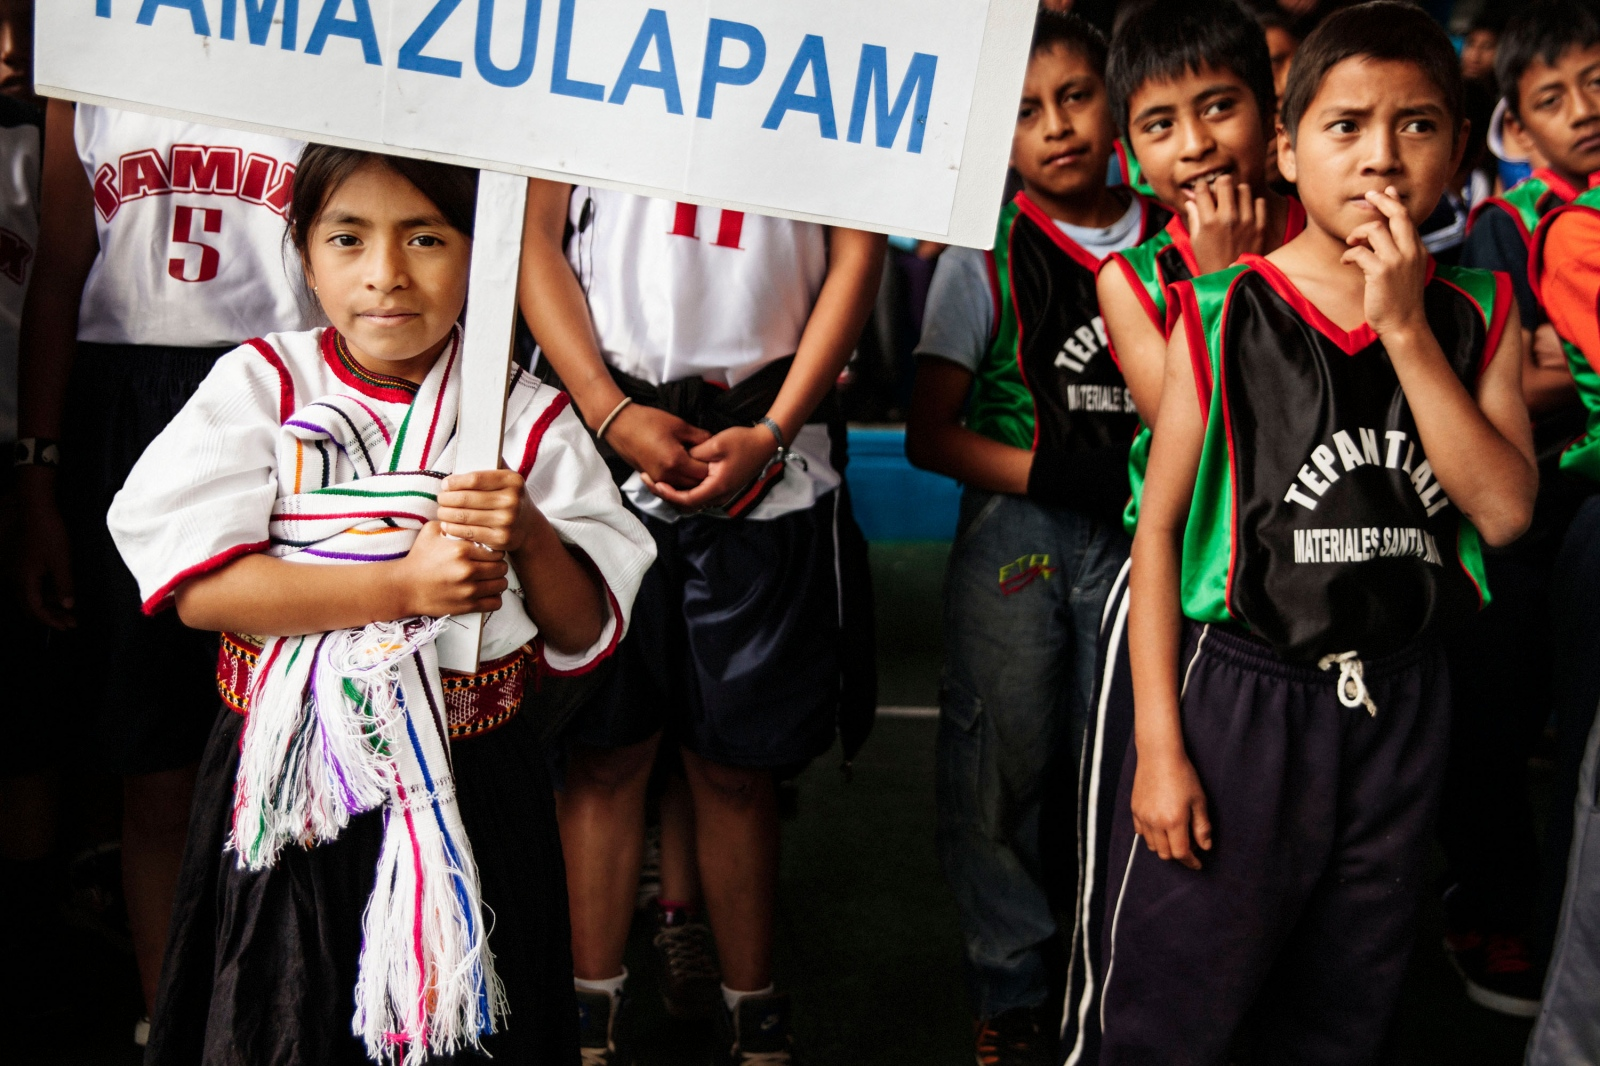 GUELATAO DE JUÁREZ, MARCH 10, 2012. Young players from Tamazulapam and Tepantlali during the opening ceremony of the Copa Benito Juárez.